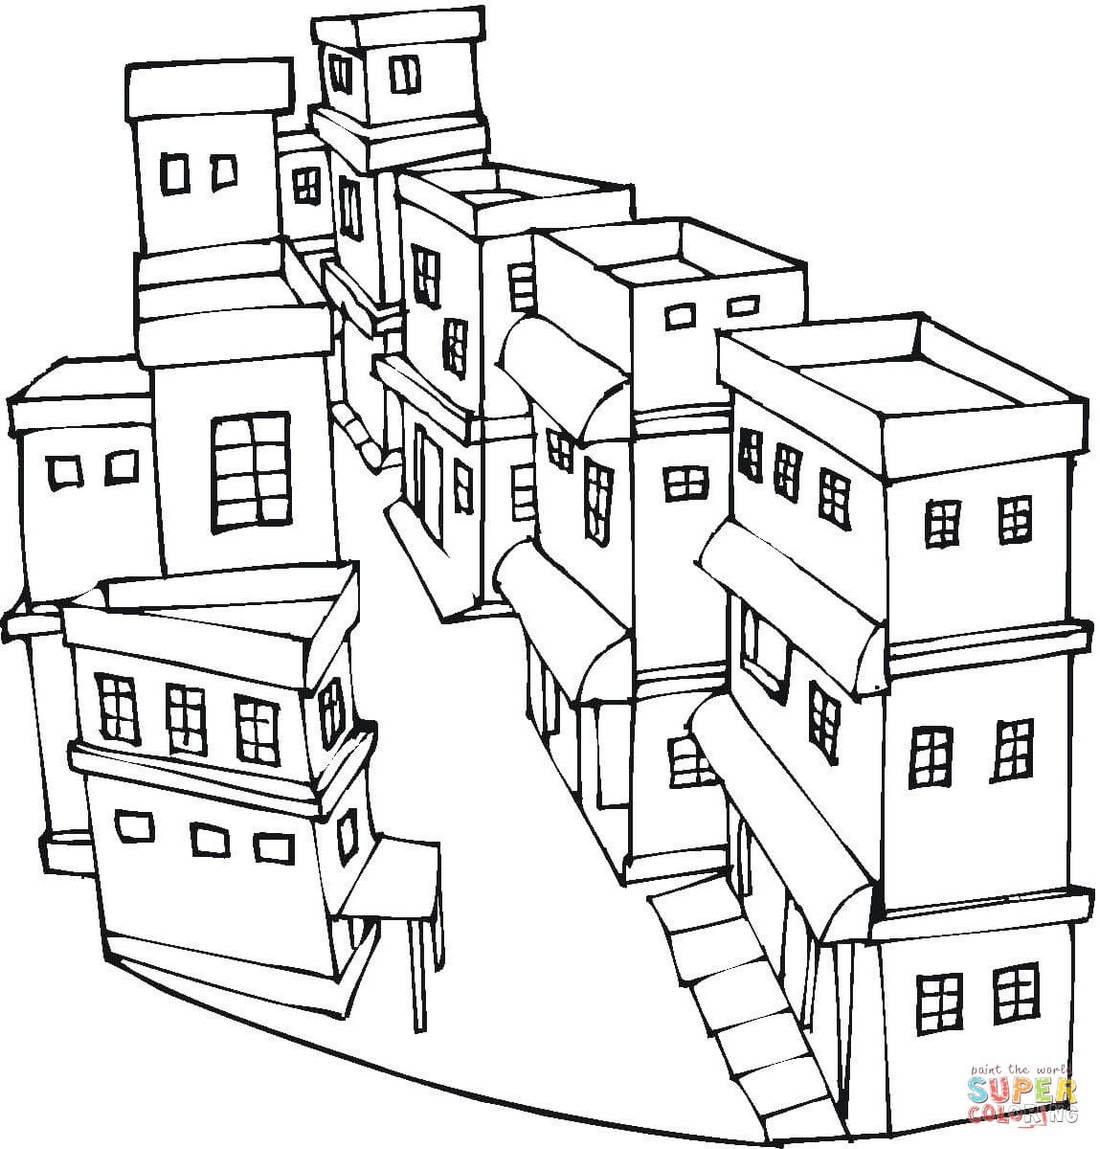 Neighborhood_City_Coloring_Page